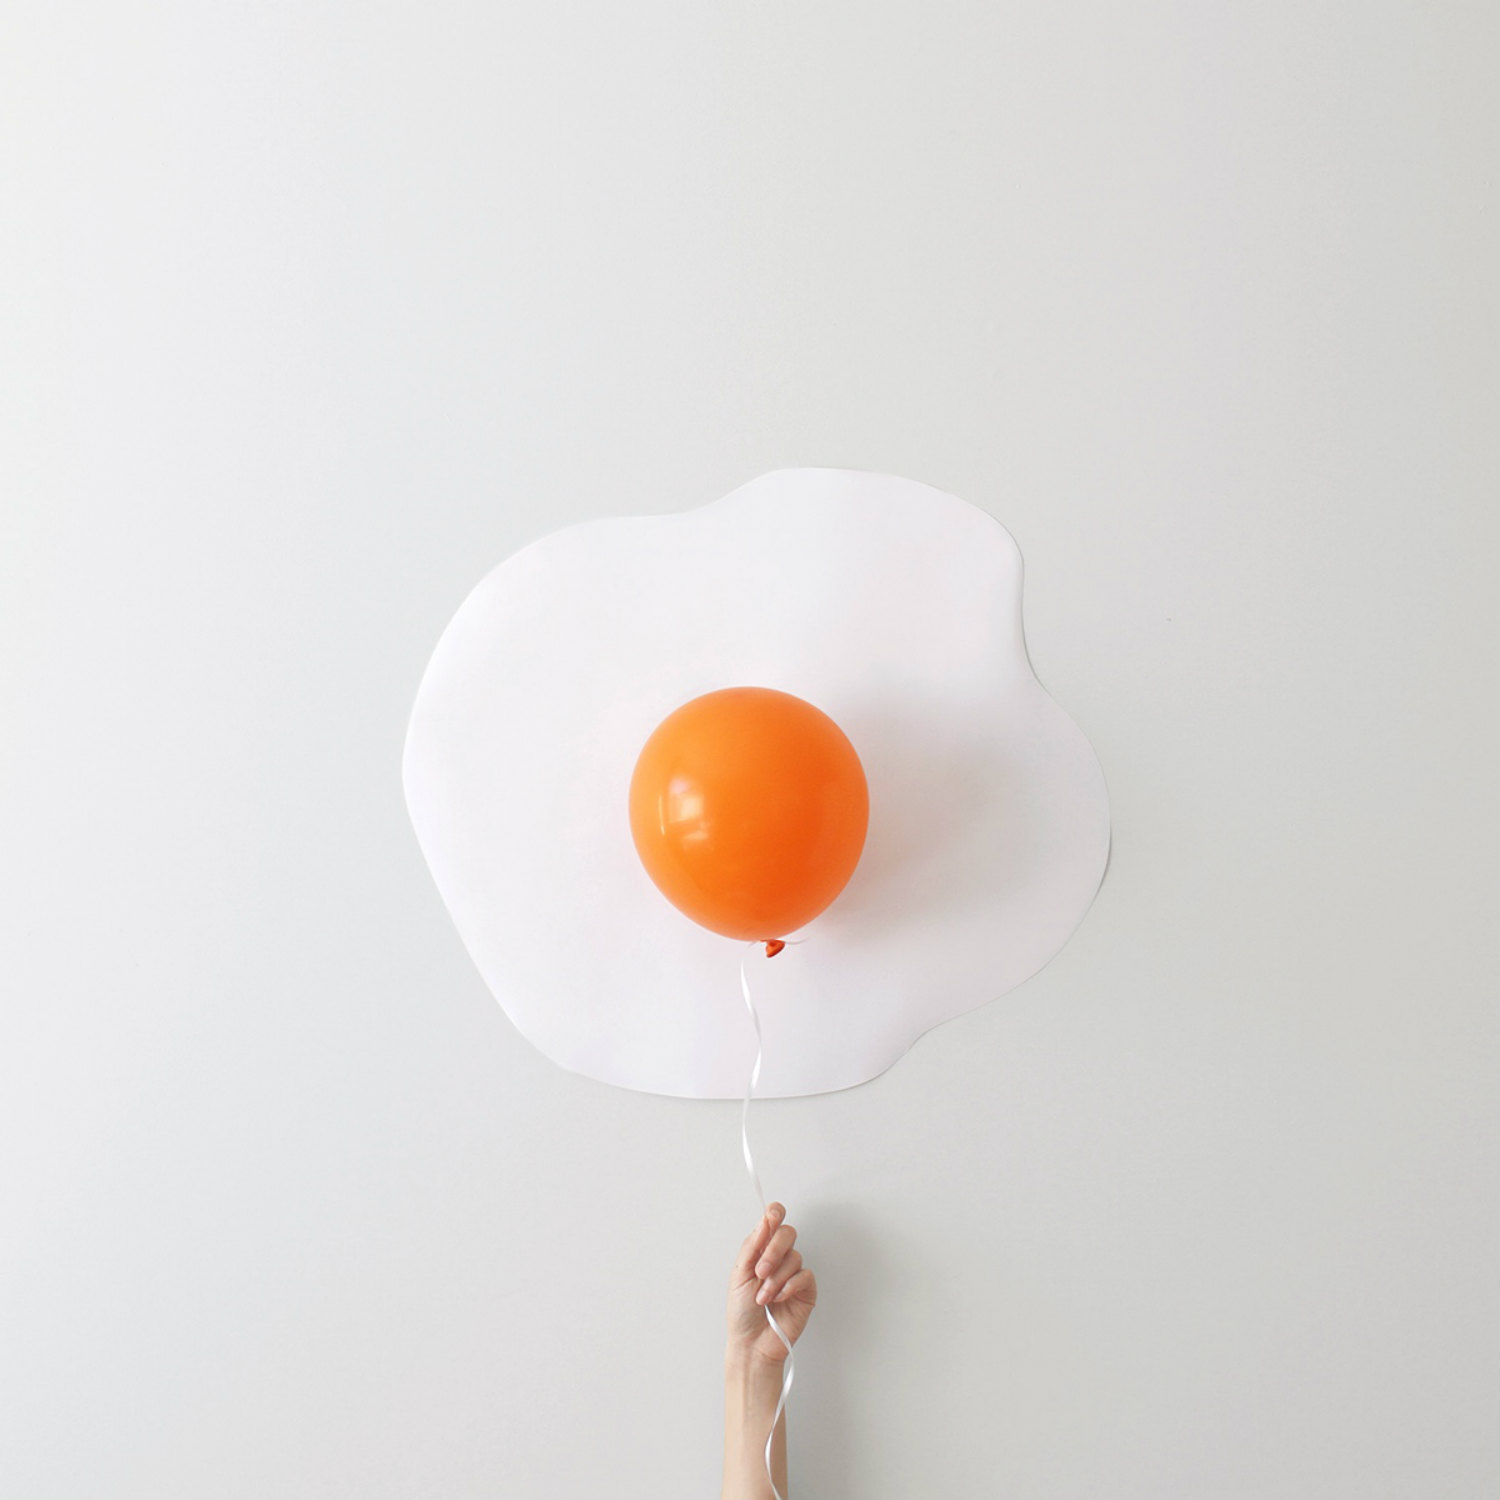 Simply creative minimalist photography by peechaya burroughs for Minimal artiste